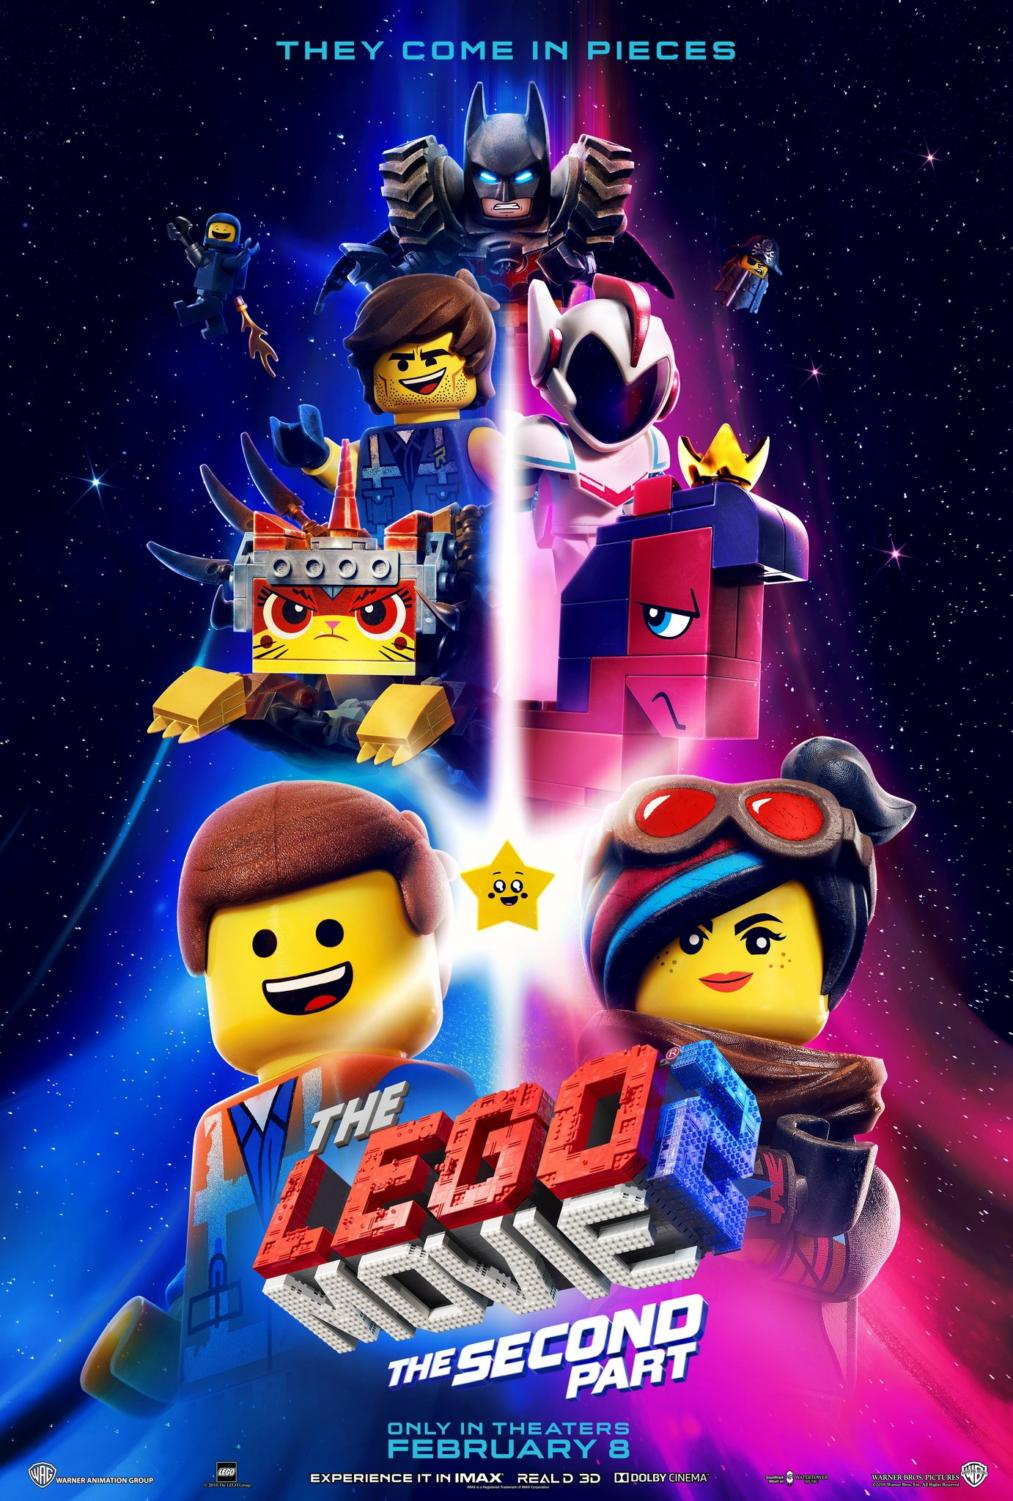 """The cast of the first Lego Movie reprised their roles for """"Lego Movie 2: The Second Part,"""" along with a slew of new characters."""